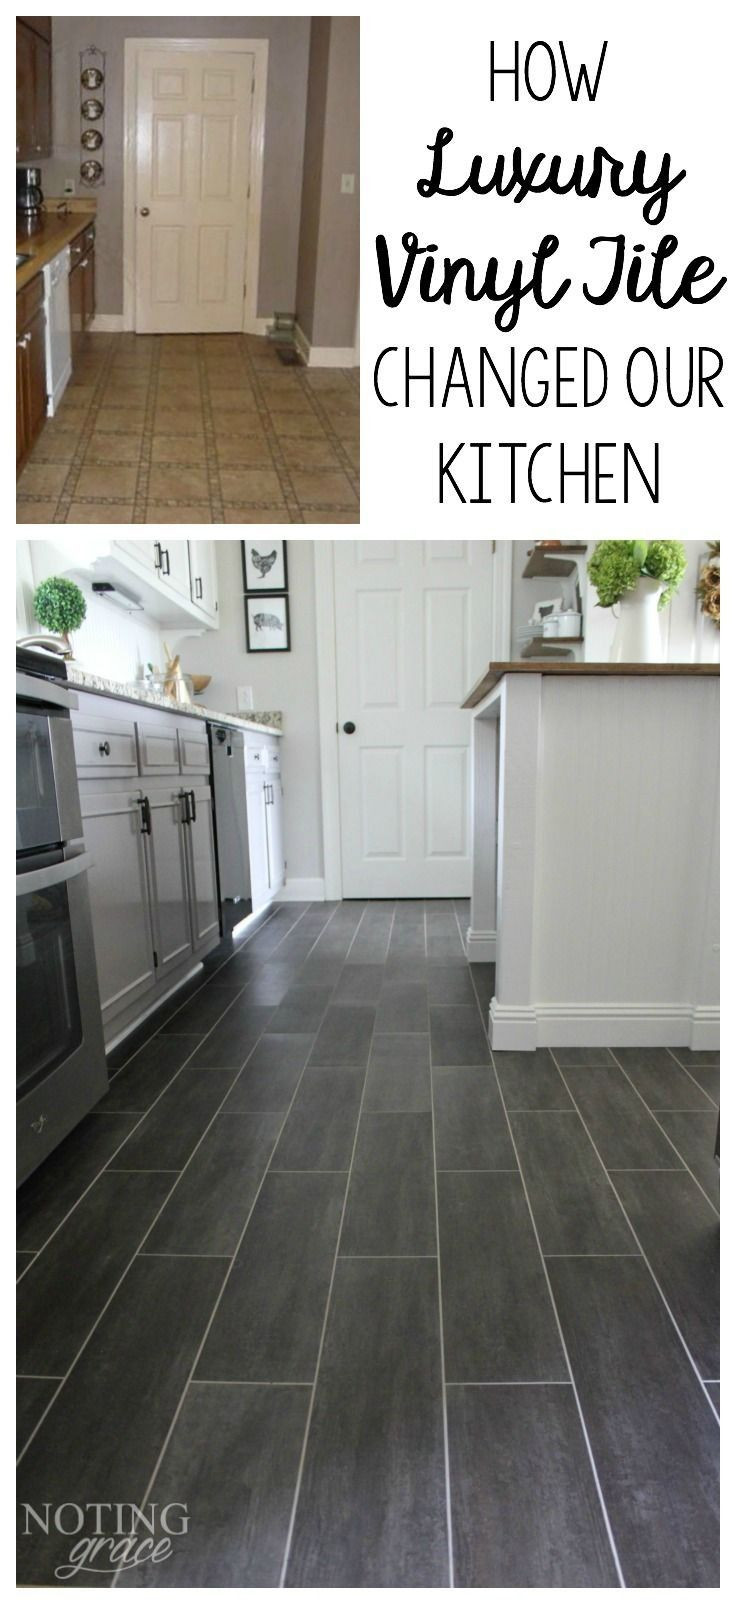 26 attractive Hardwood and Tile Floor Cleaning Machines 2021 free download hardwood and tile floor cleaning machines of dark grey kitchen floor tiles amazingpaversfl com pertaining to diy kitchen flooring kitchen ideas pinterest dark grey kitchen floor tiles